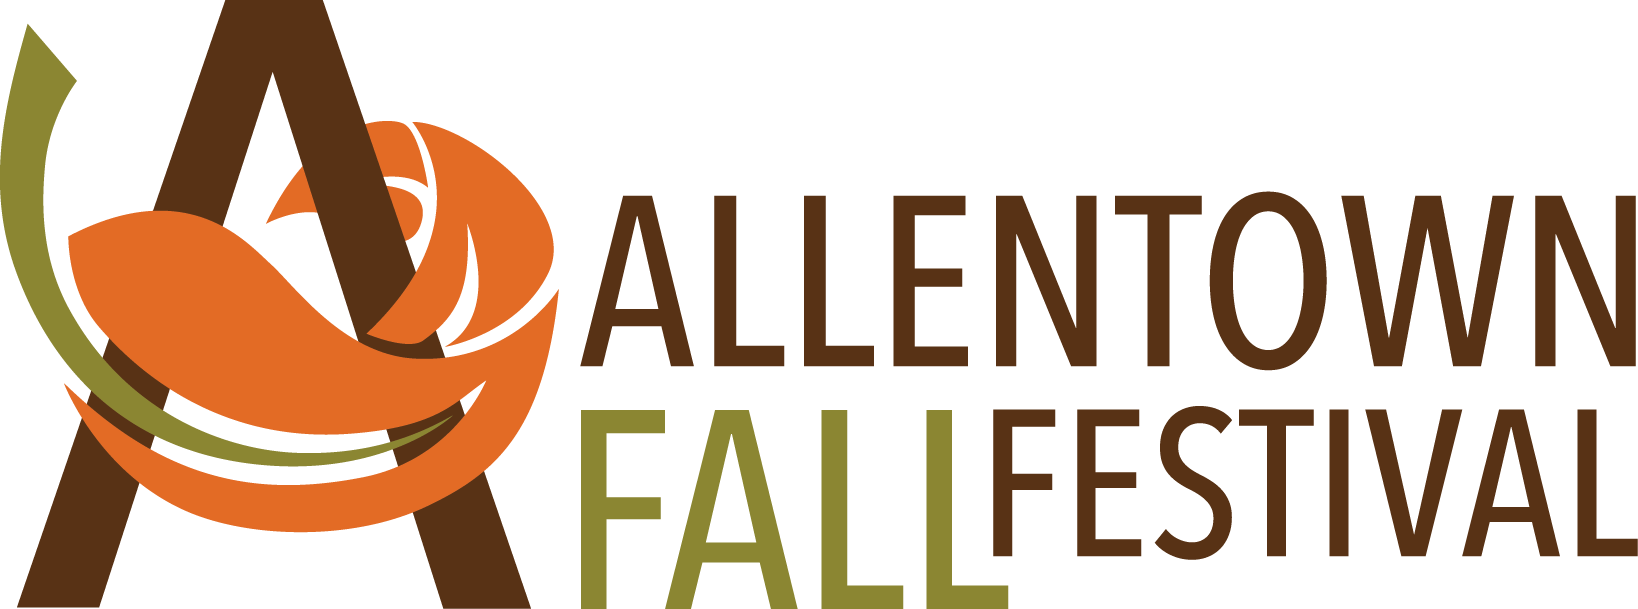 Allentown Fall Fest logo